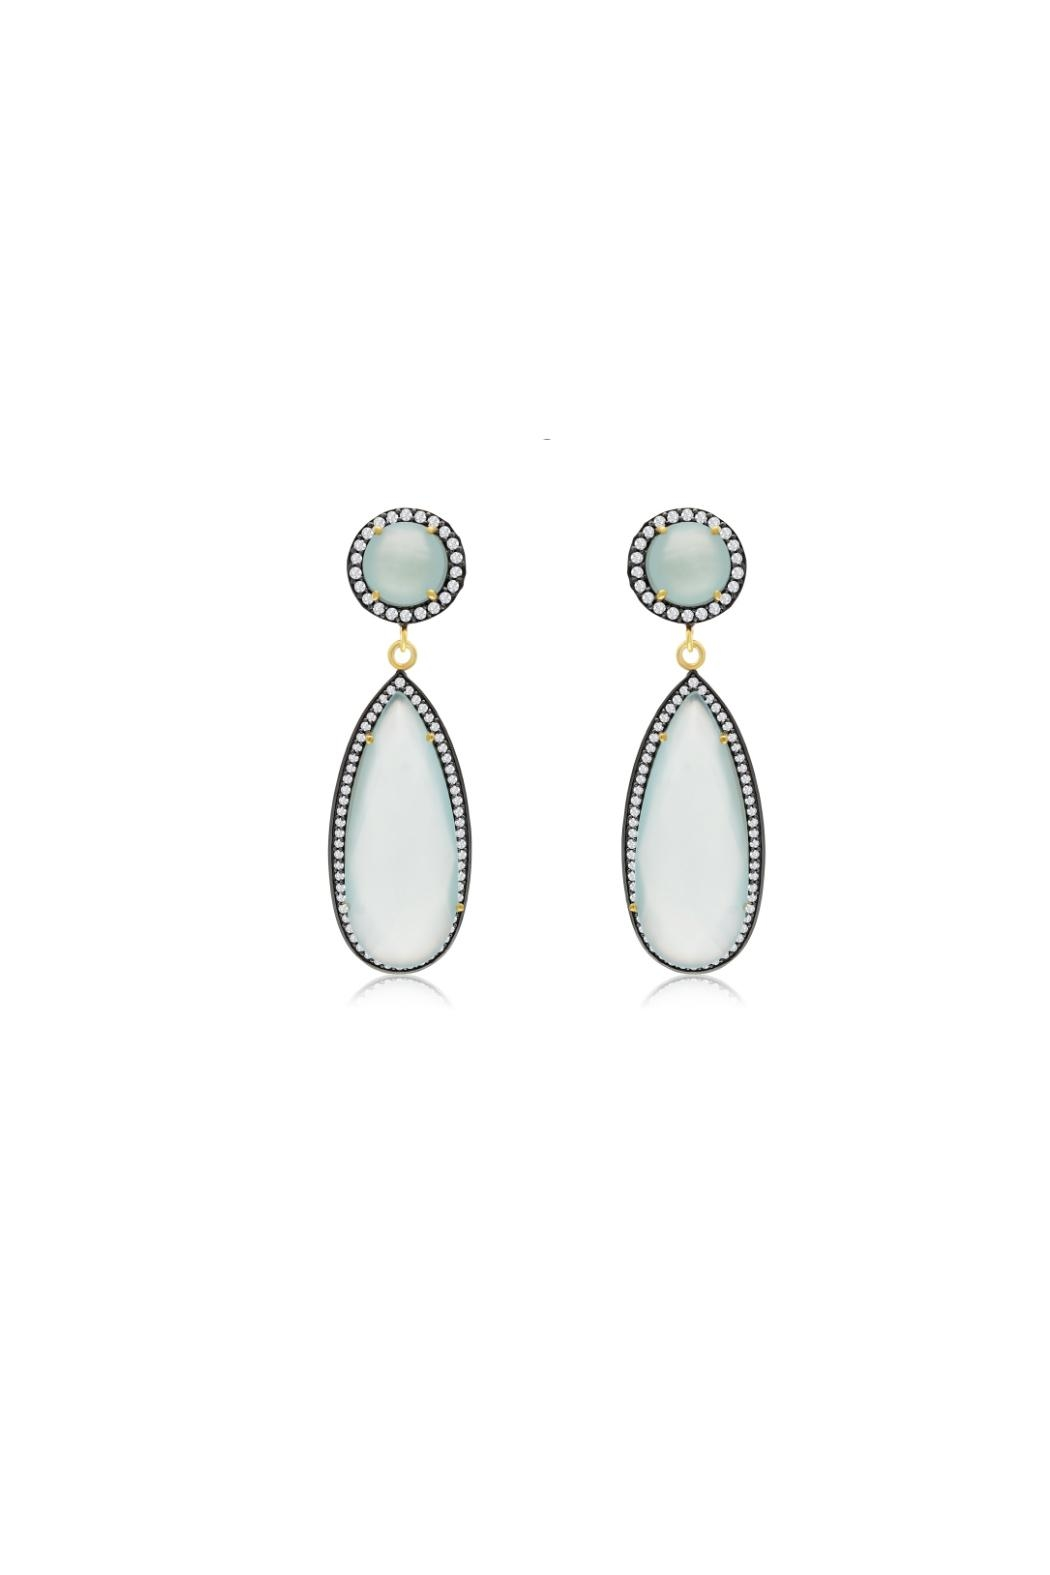 6th Borough Boutique Mint Tina Earrings - Main Image